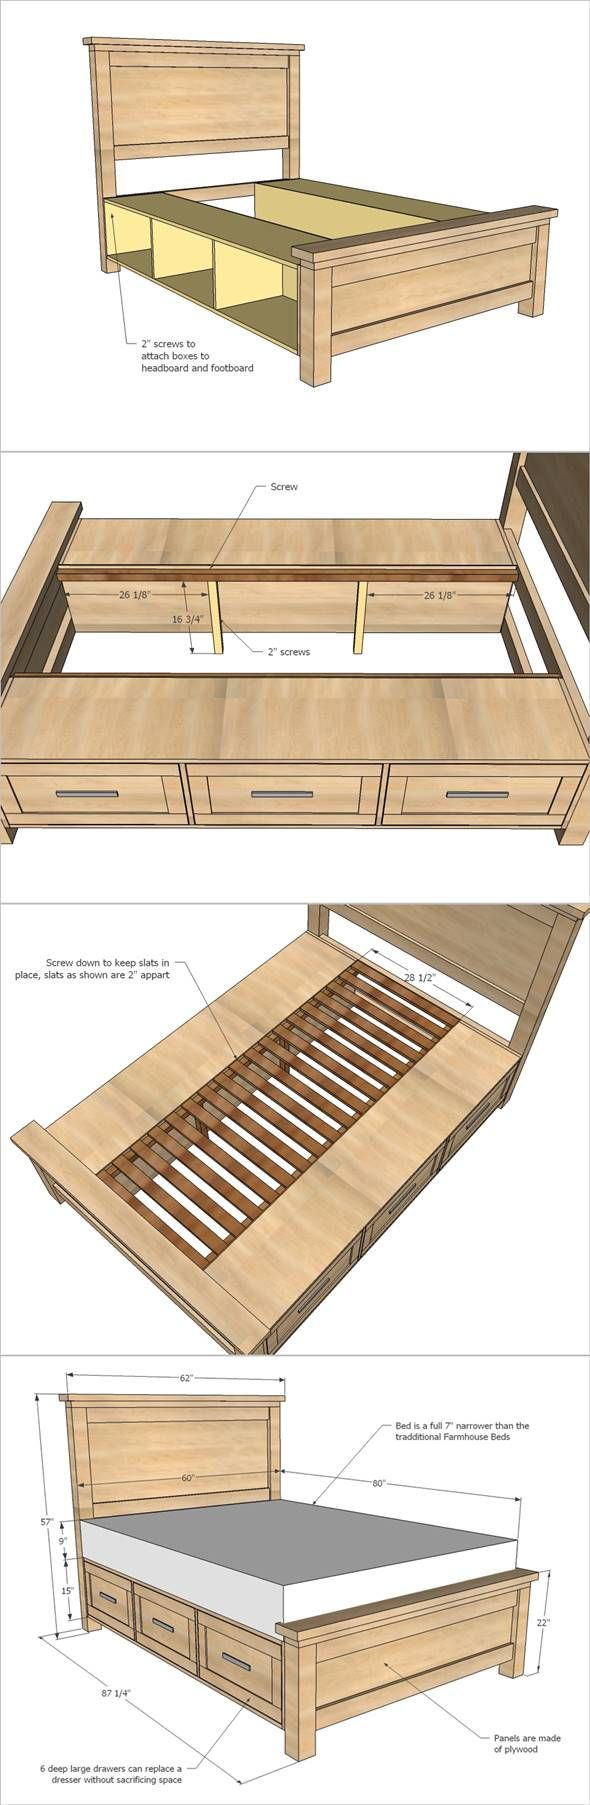 creative ideas how to build a farmhouse storage bed with drawers